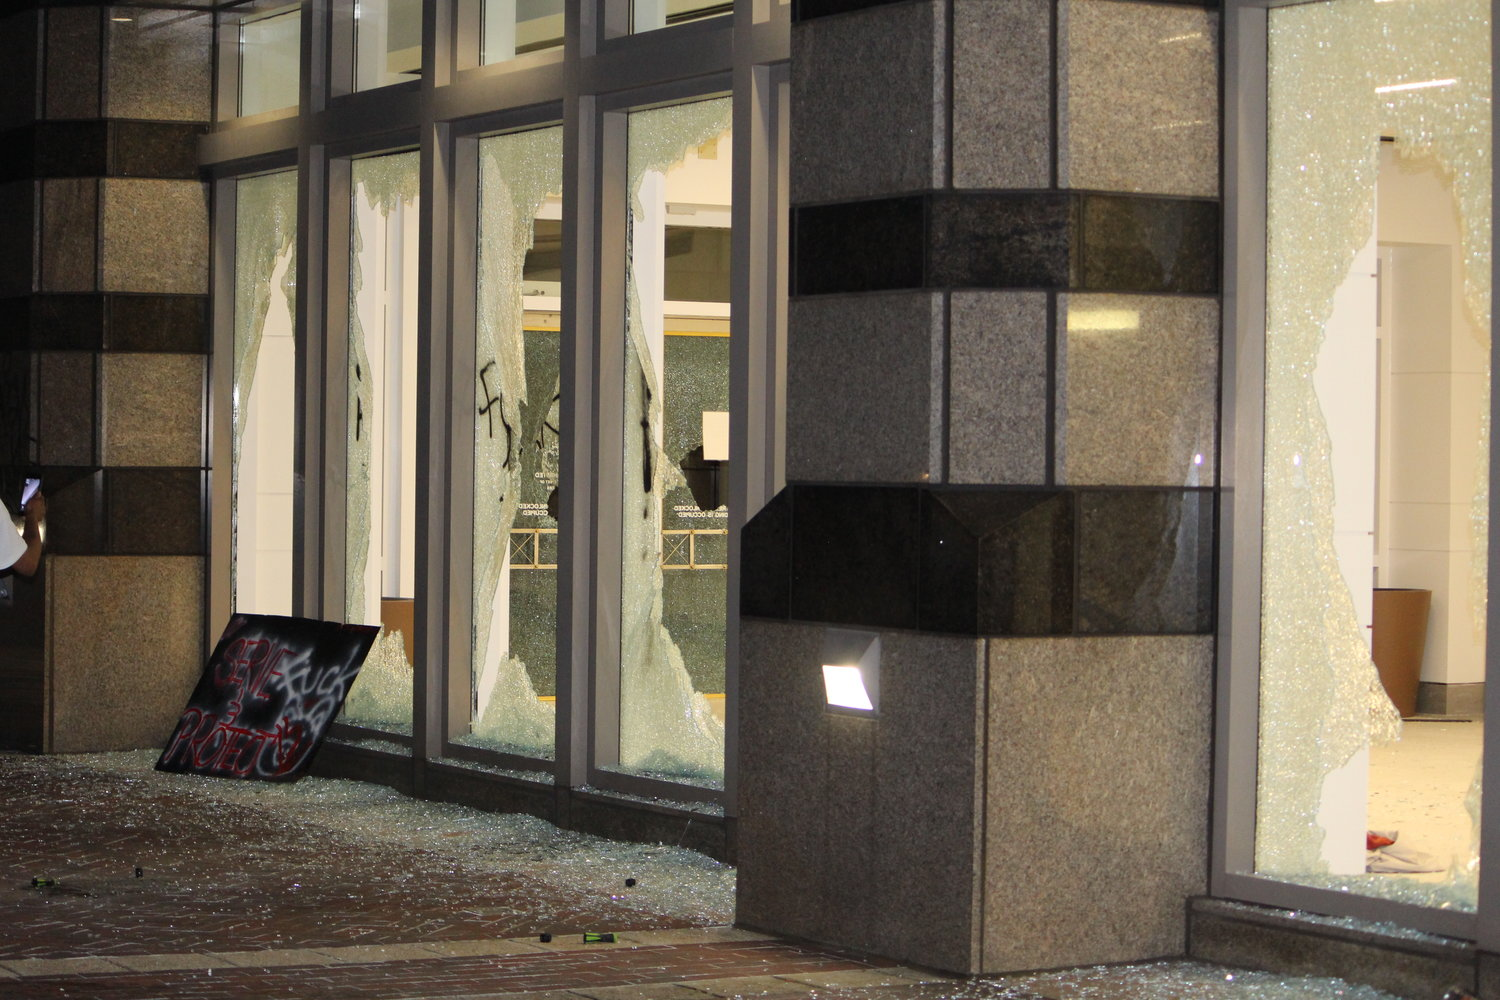 The windows of Wells Fargo on 6th Ave N in Birmingham were busted out as protests in the city turned violent. Multiple businesses were damaged, along with Confederate monuments in Lynn Park.